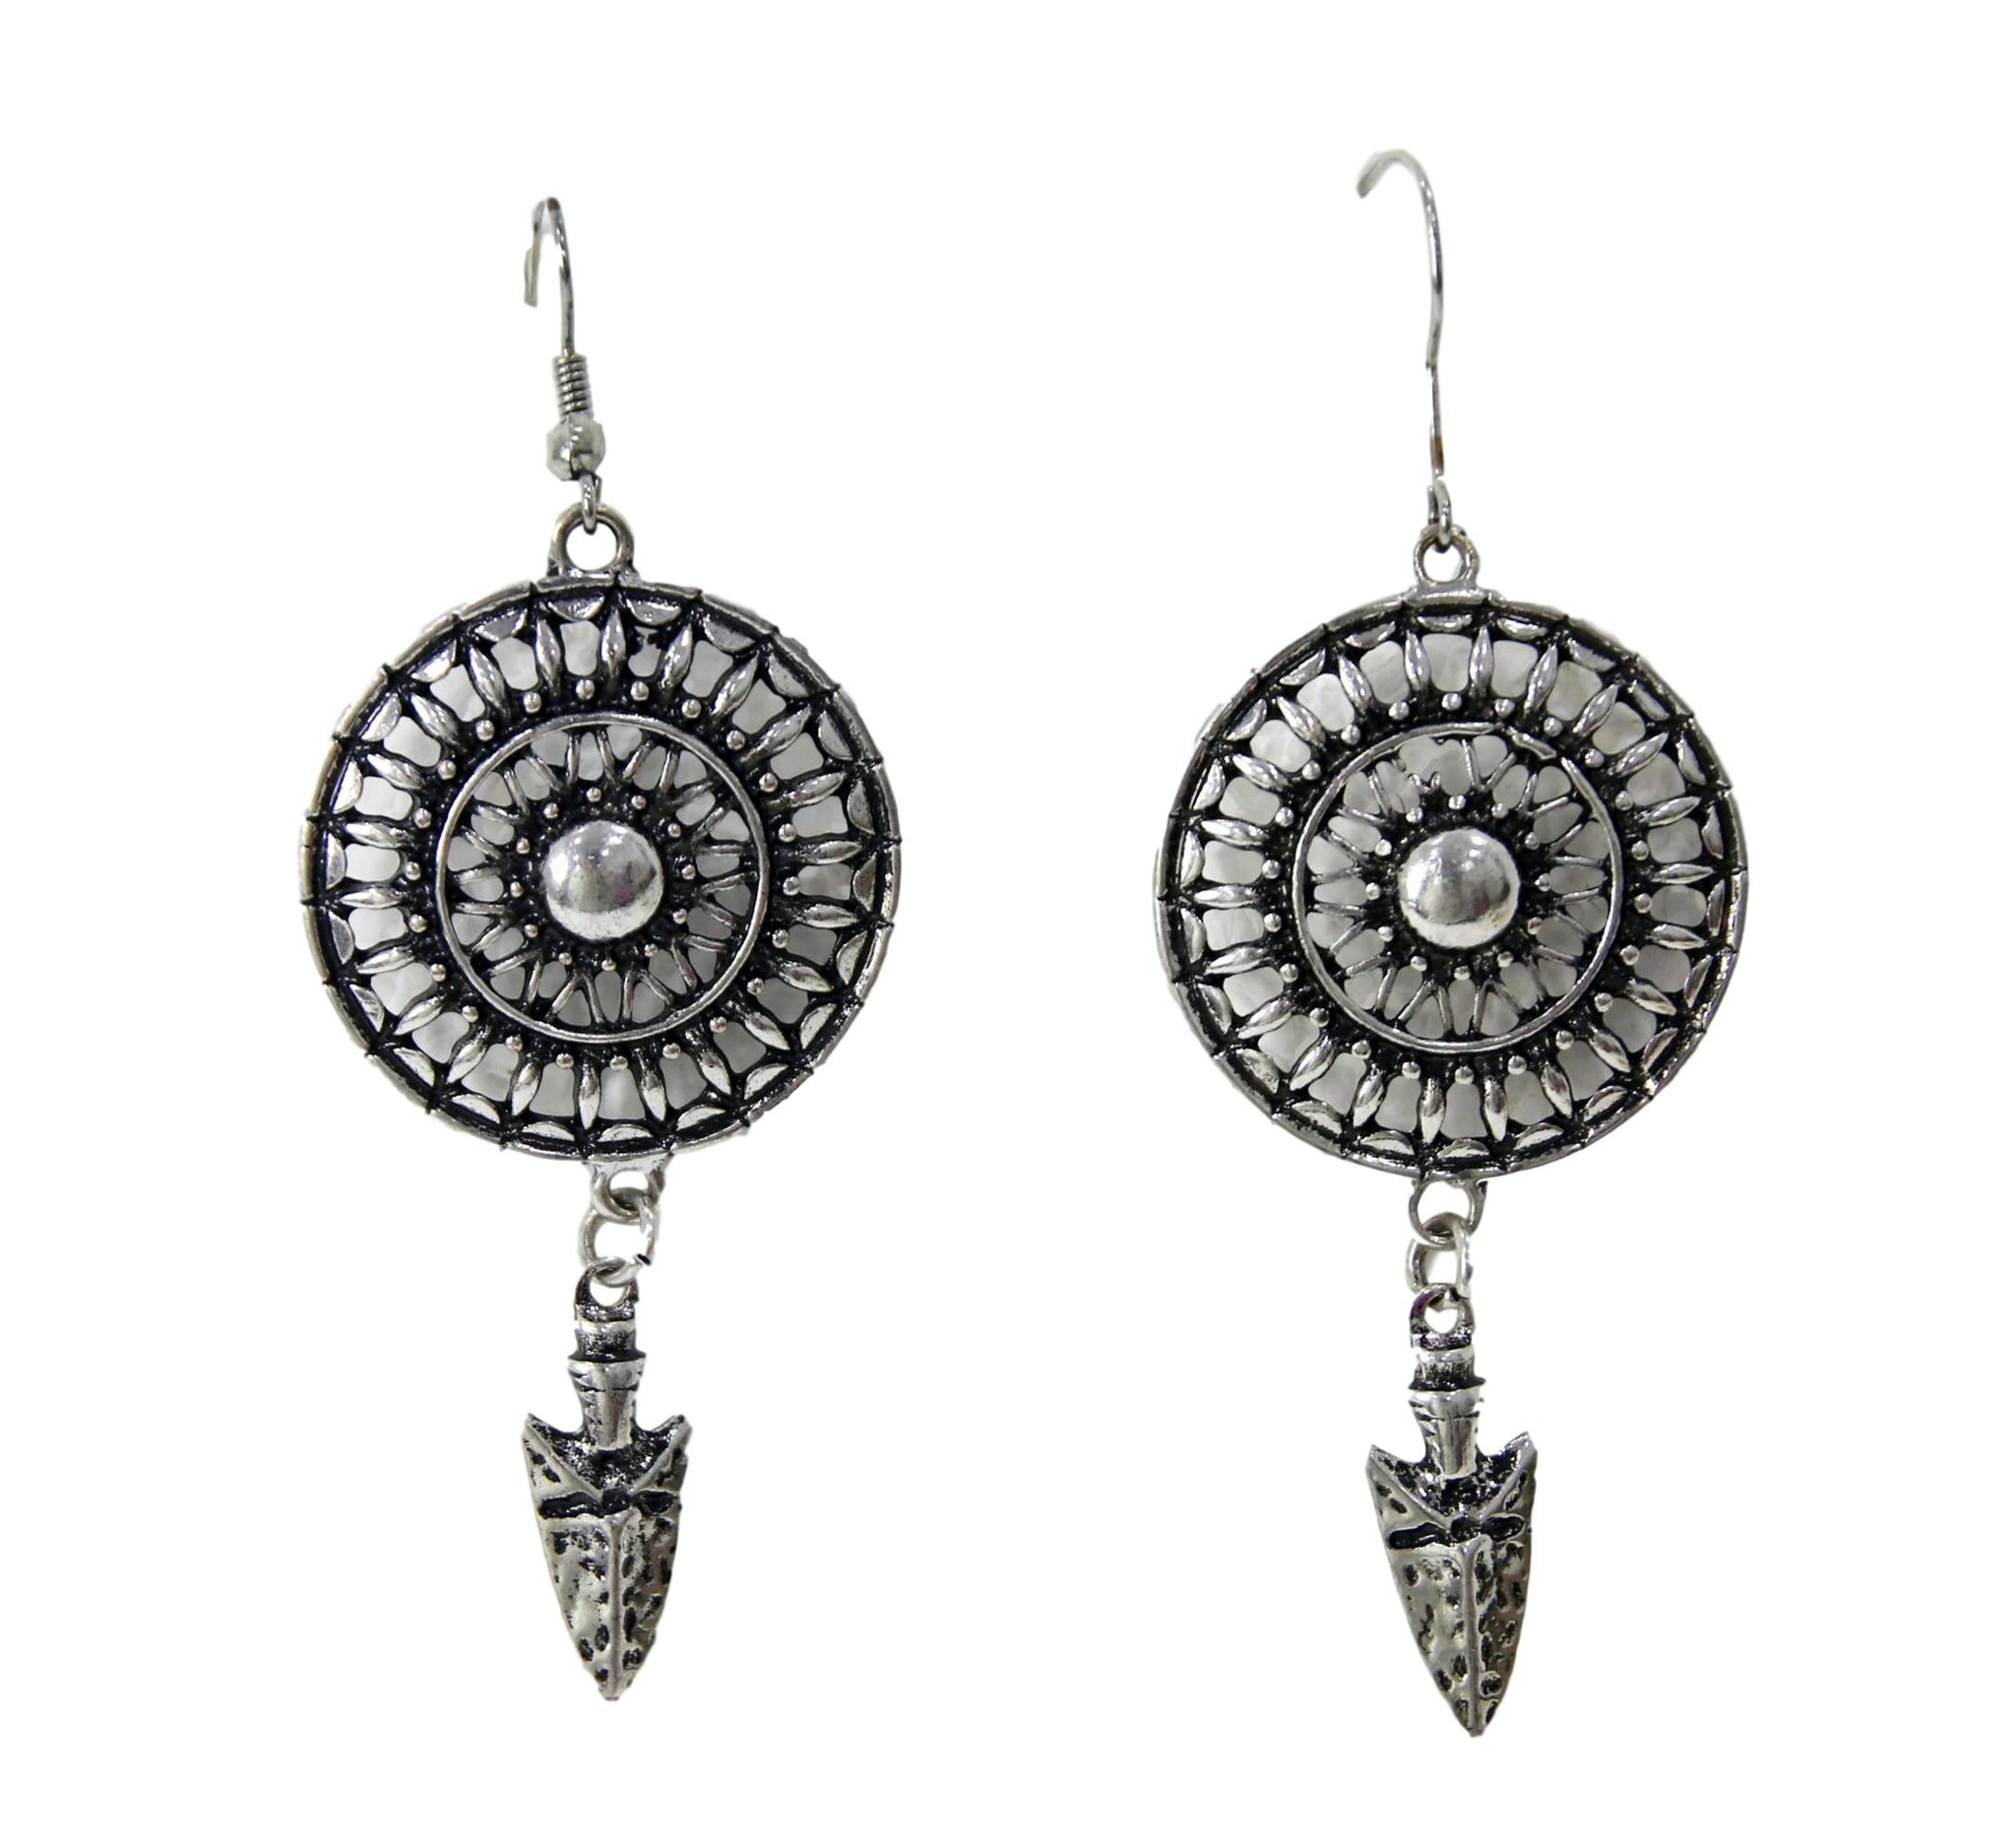 Silver Aztec Style Earrings with Arrowheads